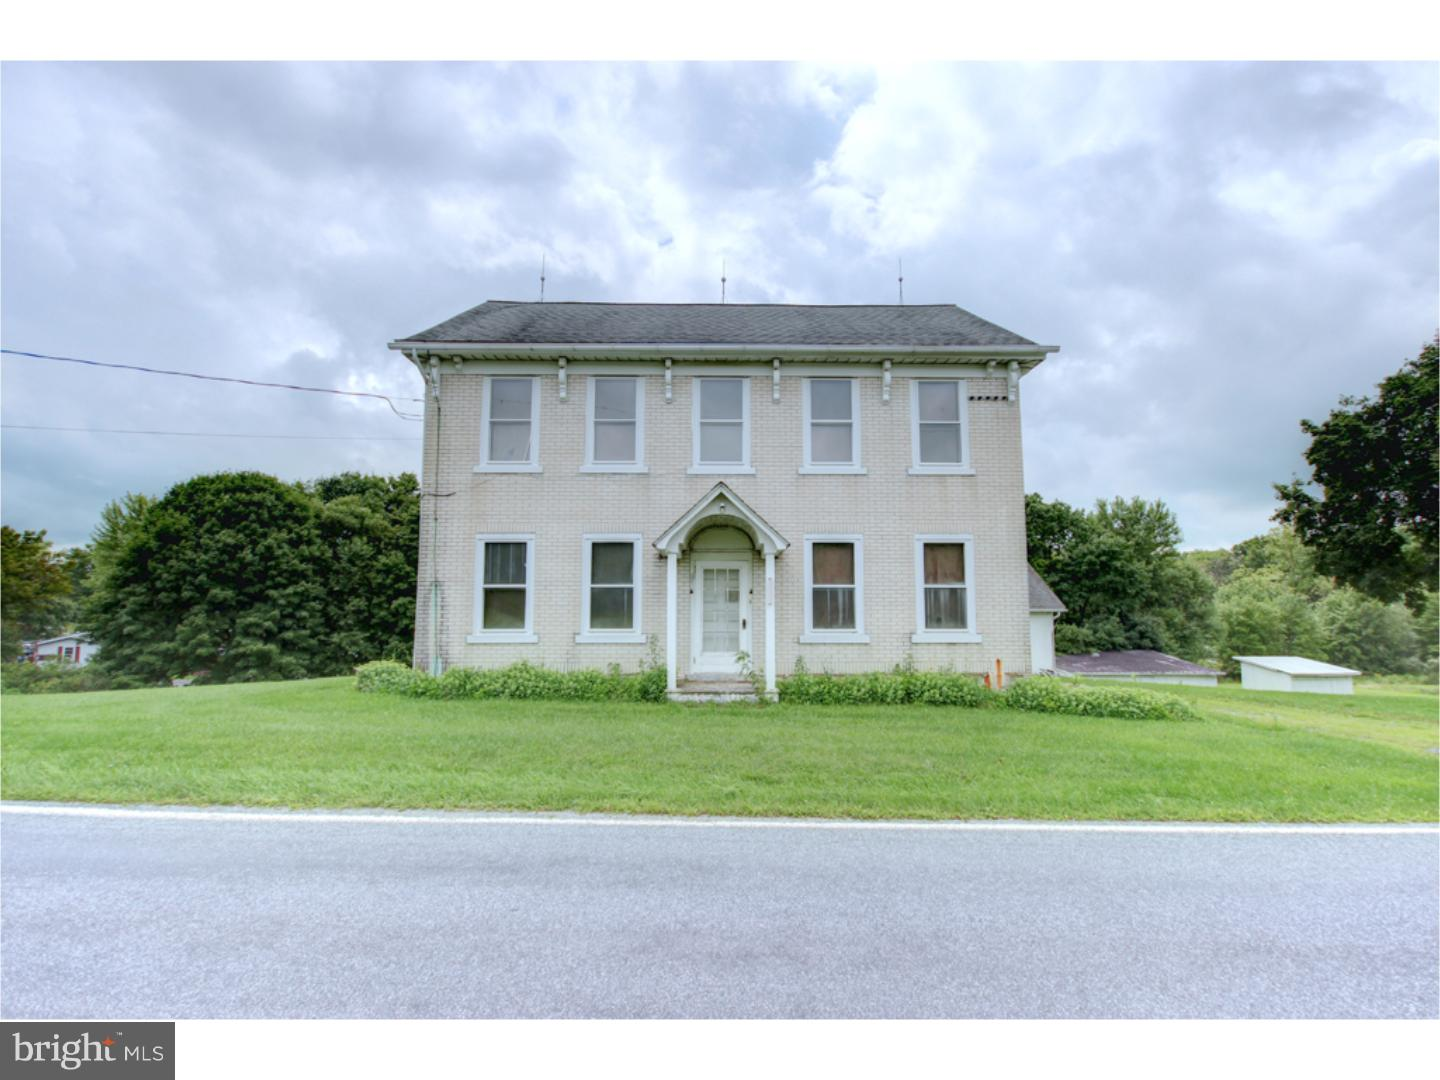 6835 SAEGERSVILLE ROAD, GERMANSVILLE, PA 18053